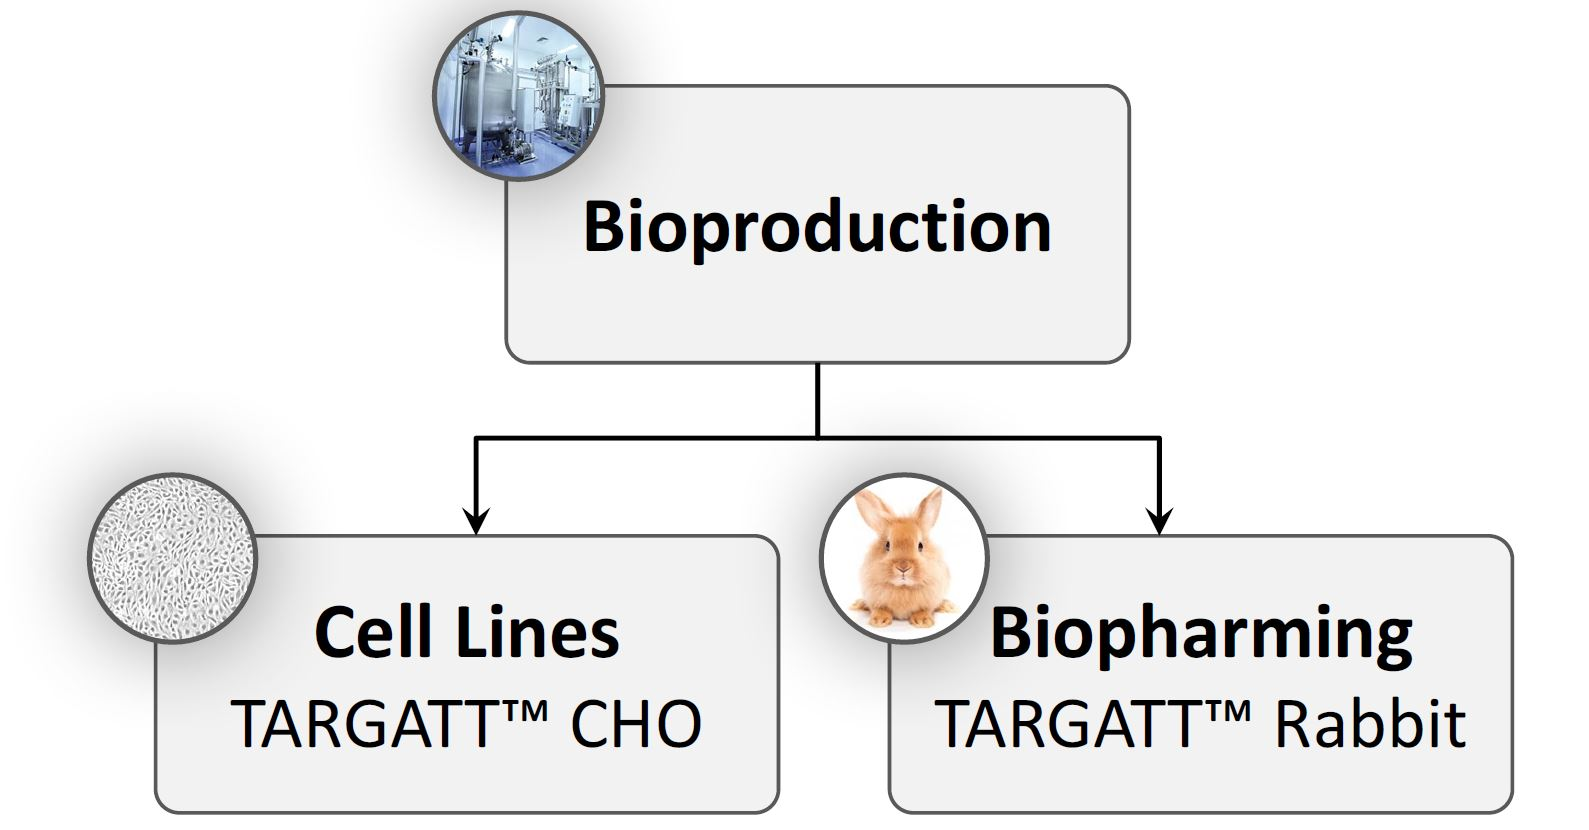 Applied StemCell Bioproduction Details